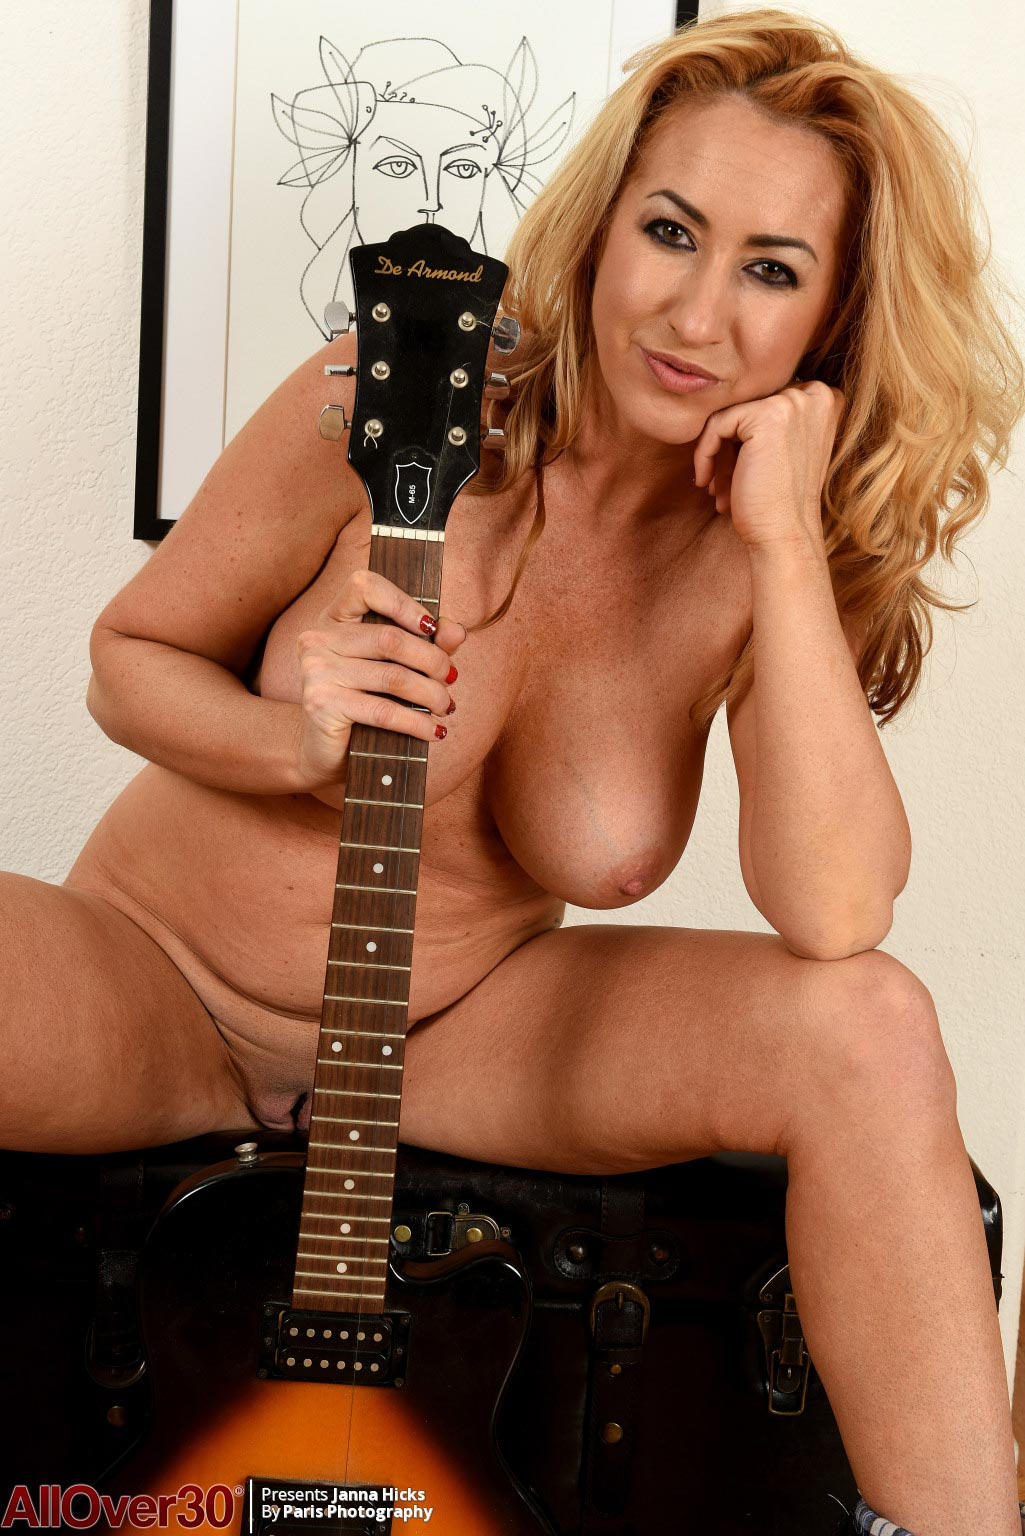 Janna Hicks Naked with a Guitar